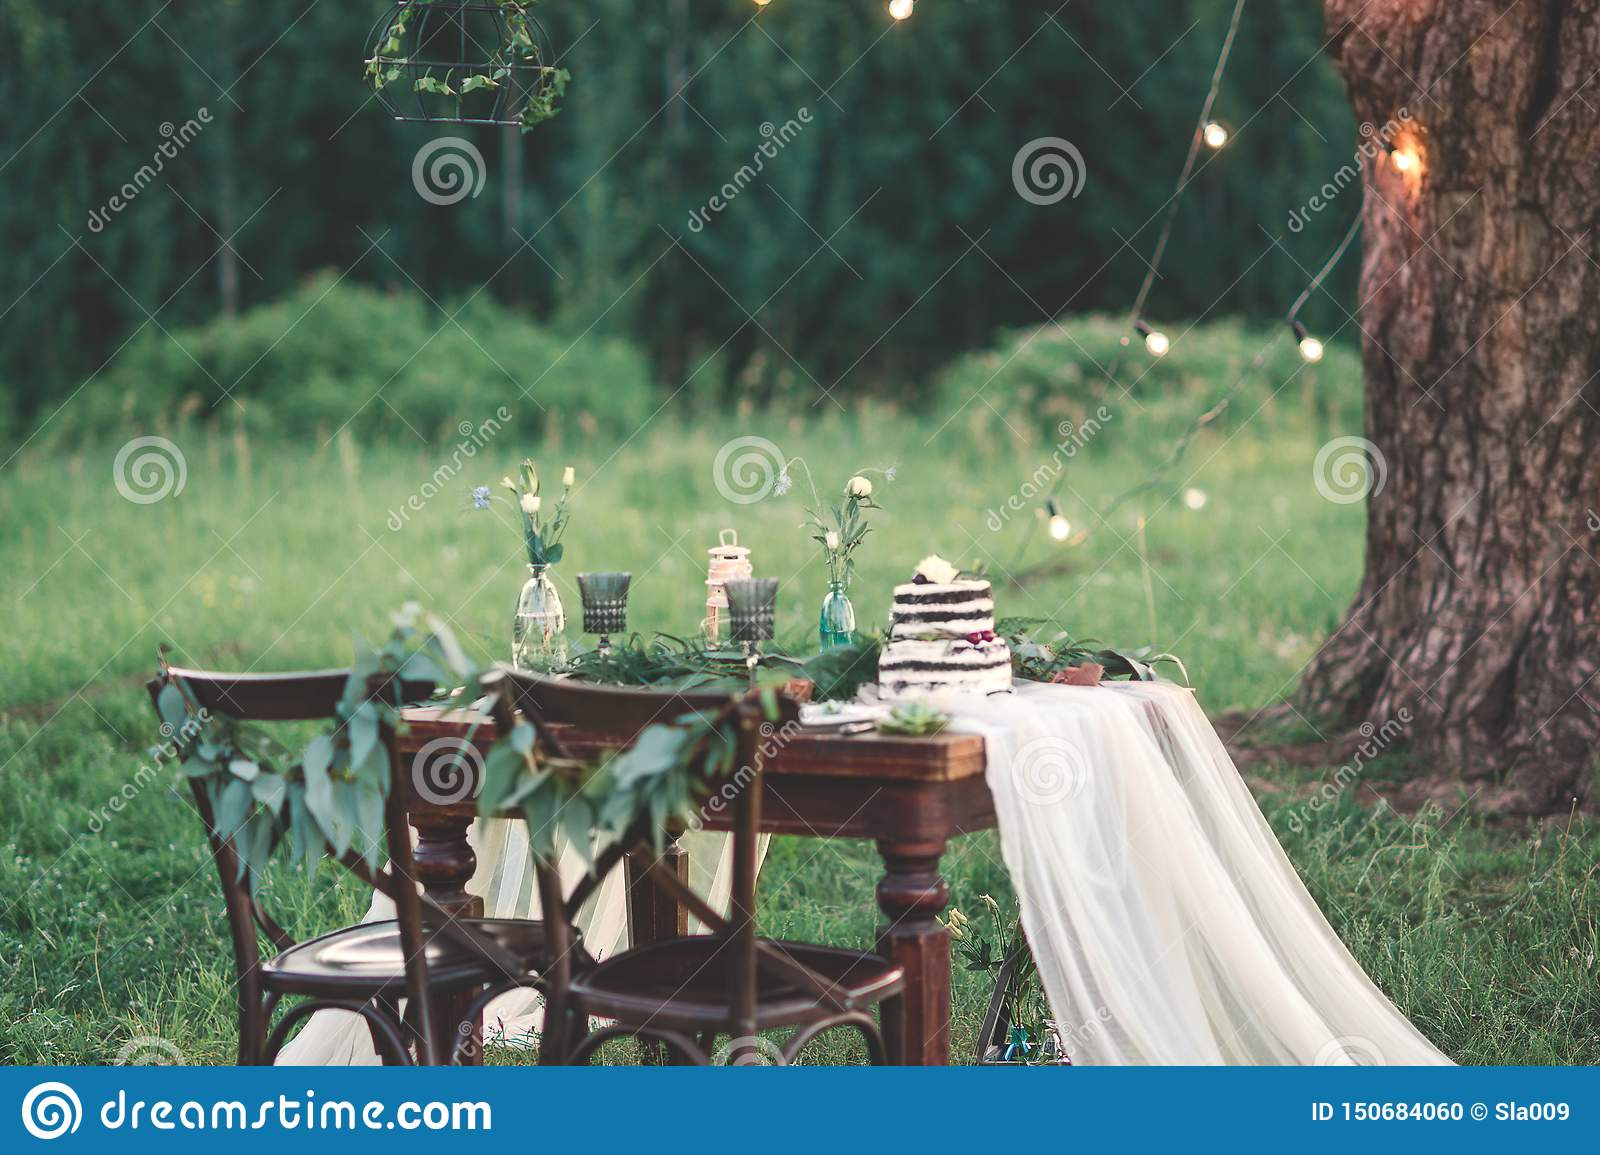 Wedding Table Decoration And Table Setting In The Field At The Pine Tree On Background Rustic Style Stock Photo Image Of Cutlery Burning 150684060